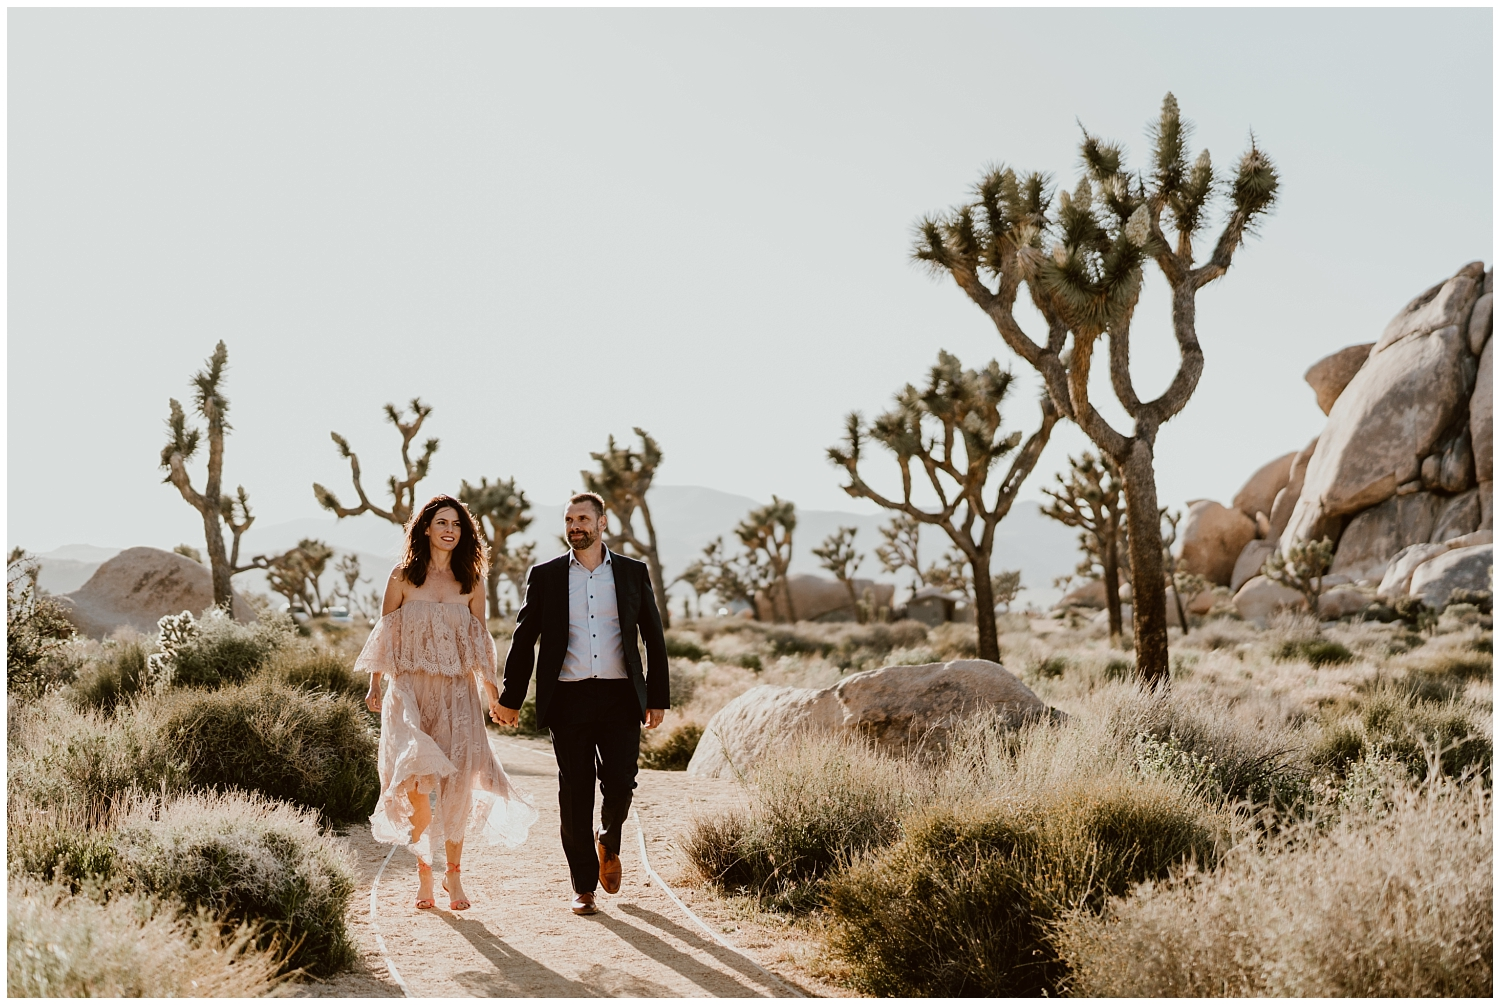 Cap-Rock-Joshua-Tree-Elopement-0020.jpg